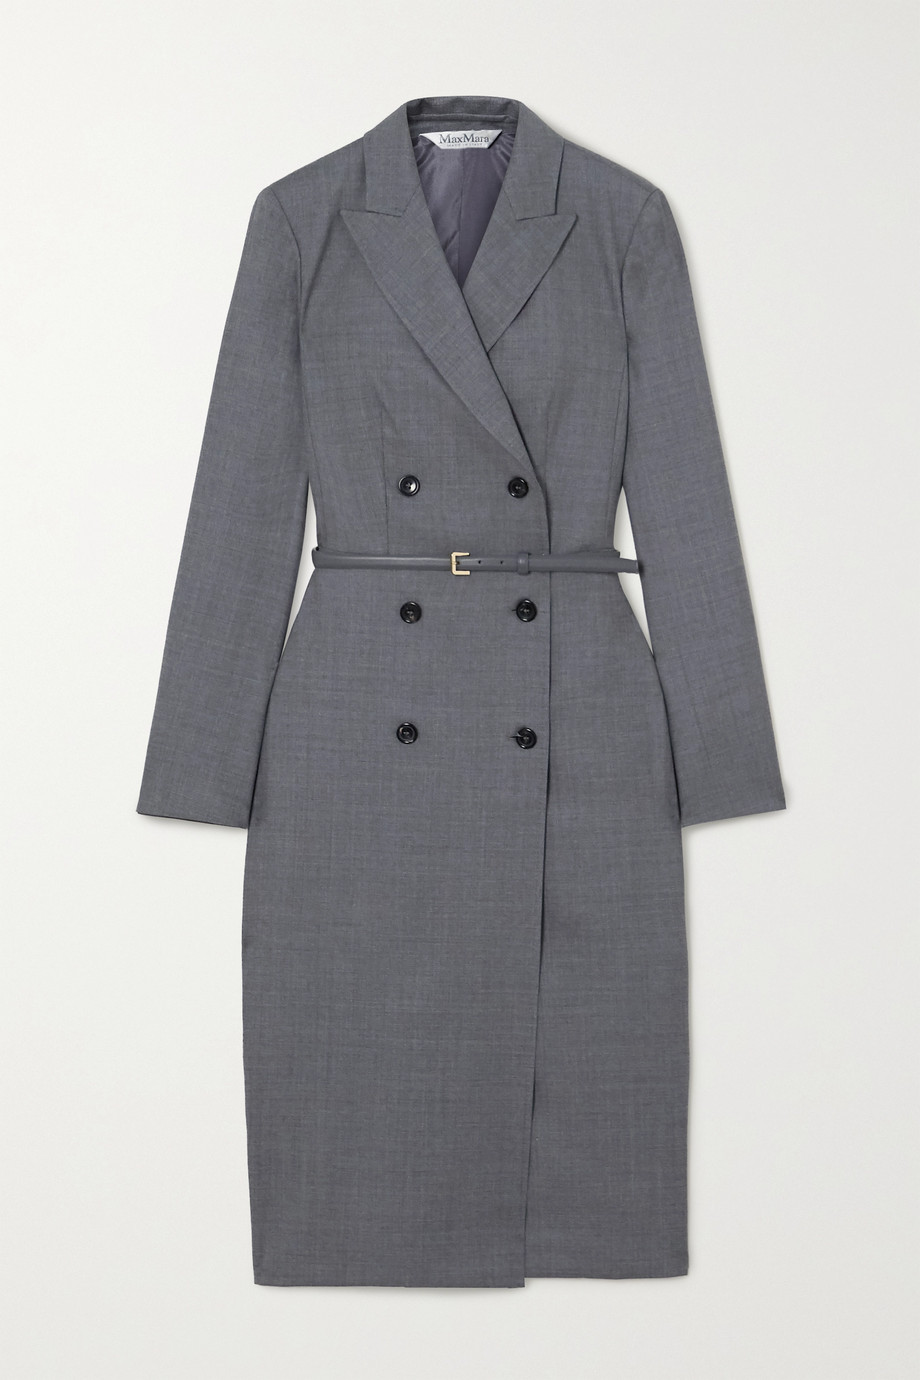 Max Mara Belted wool-blend dress